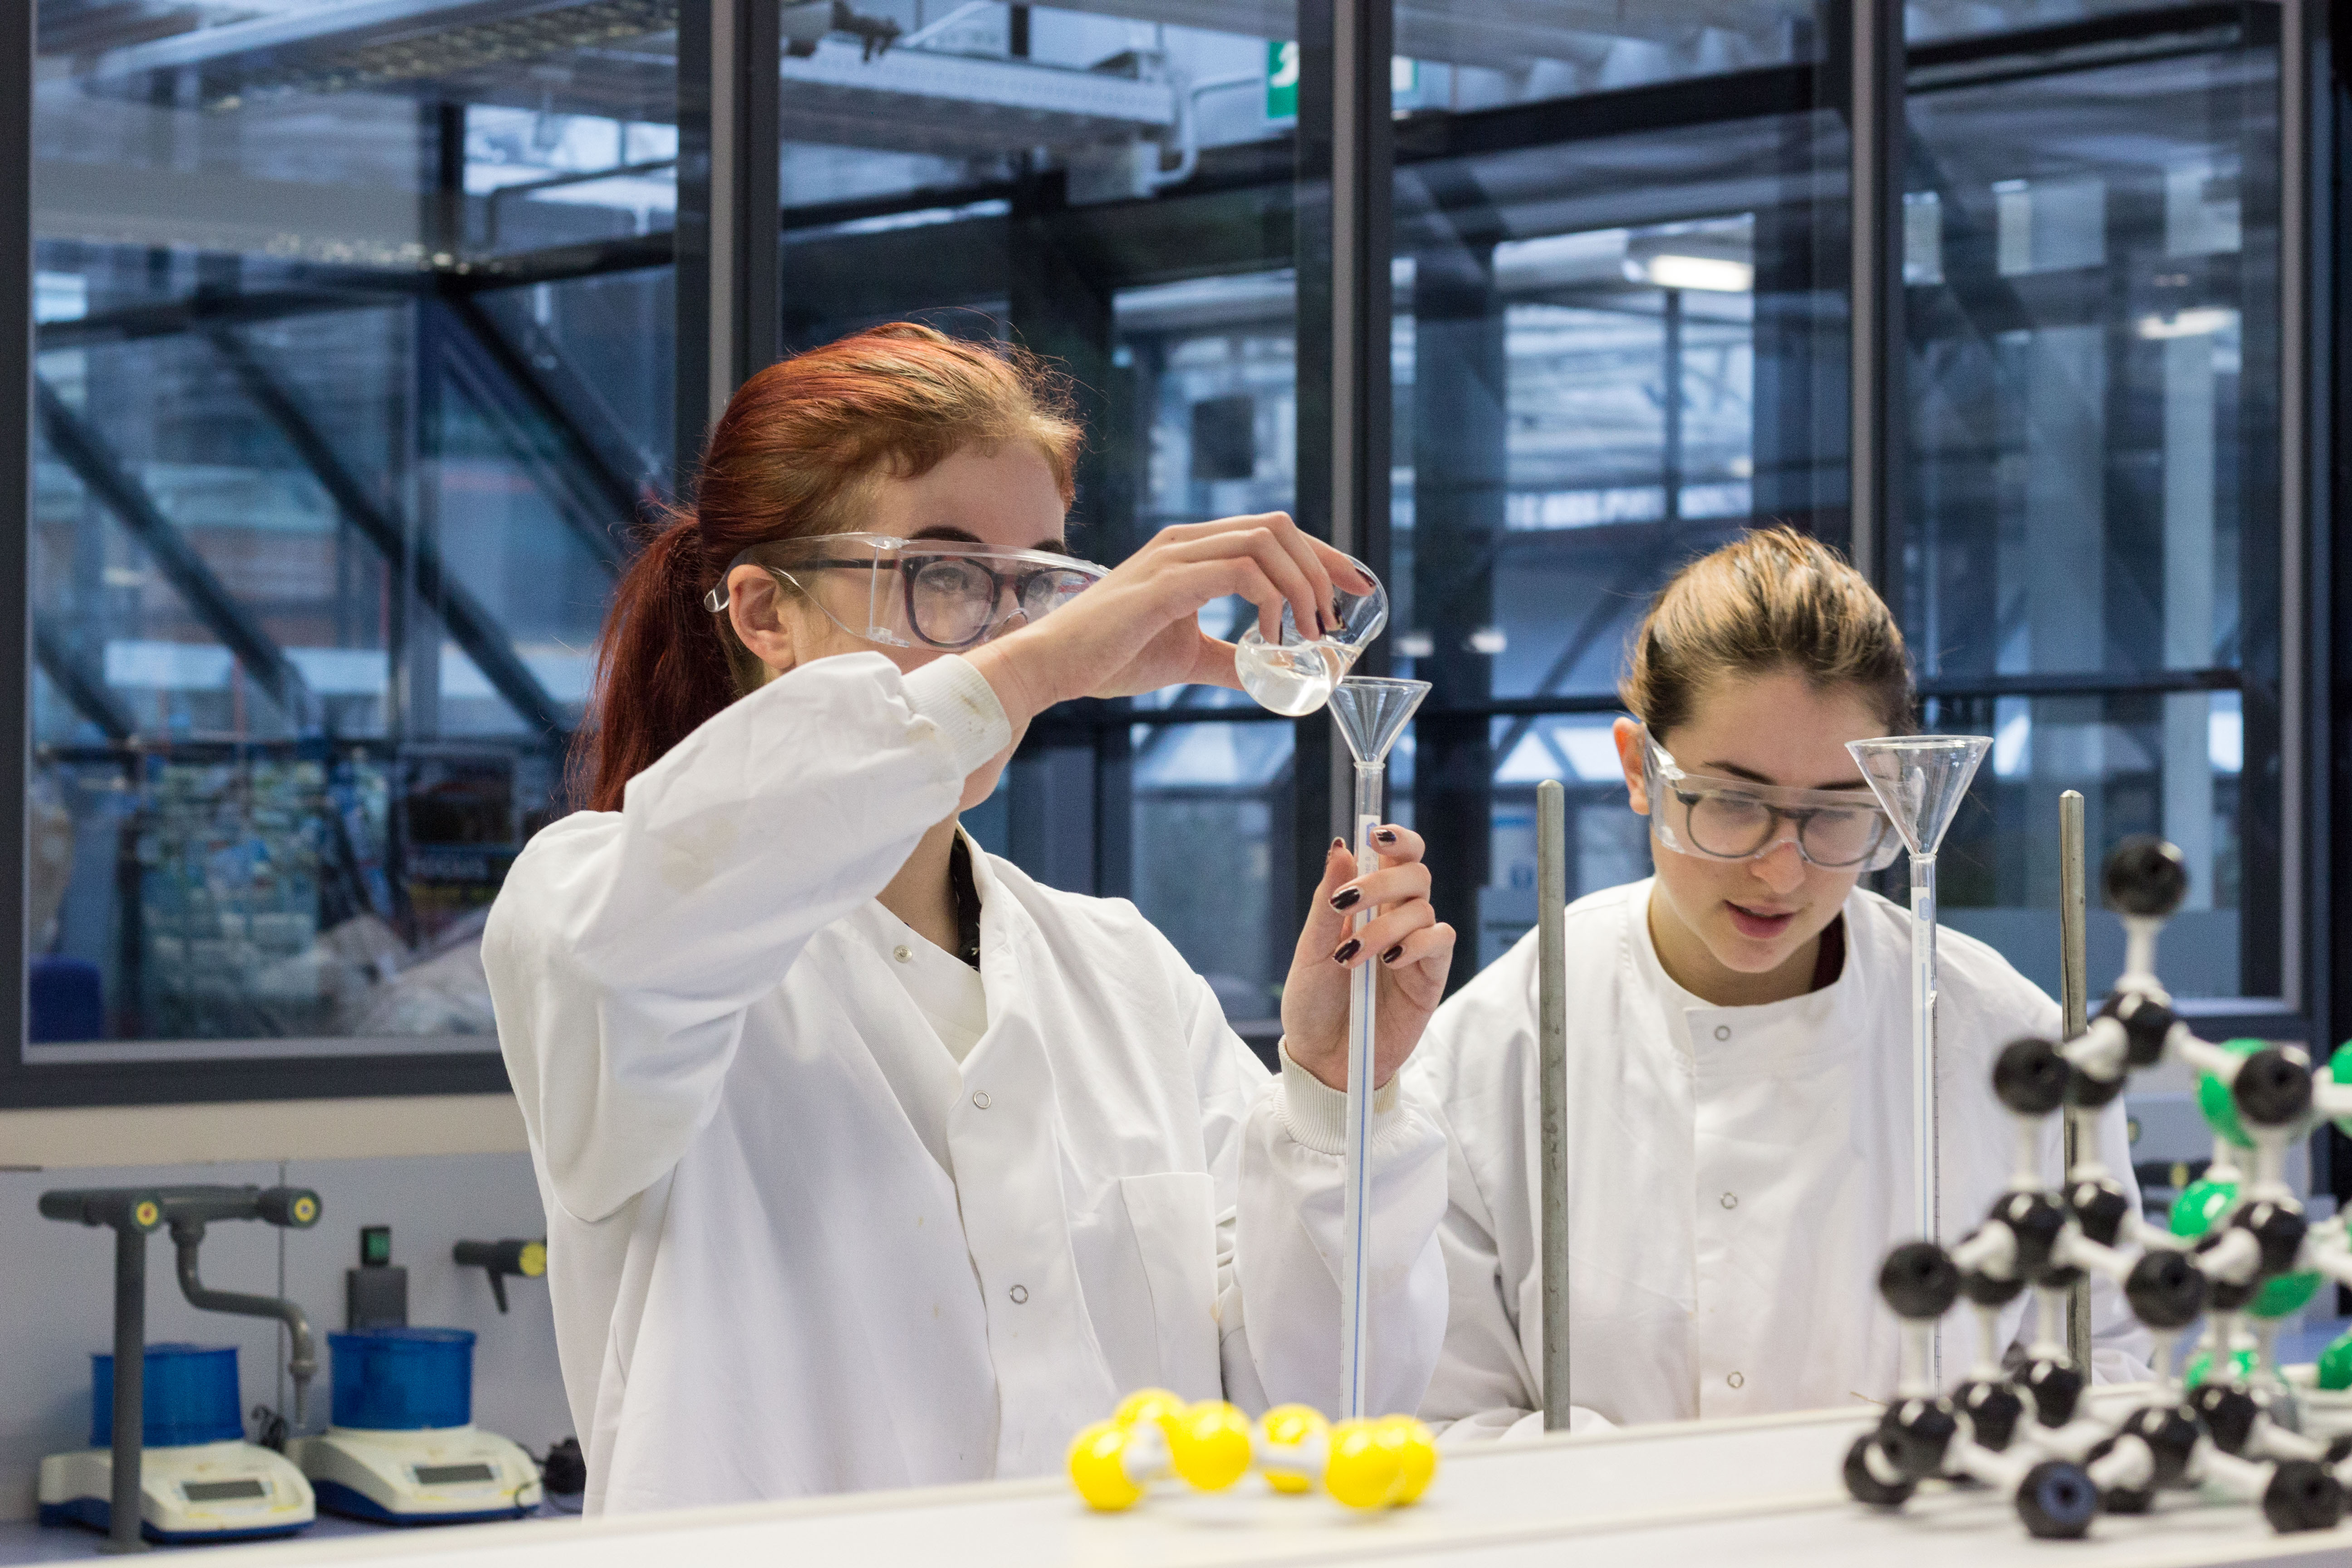 Girls working in the Science laboratory